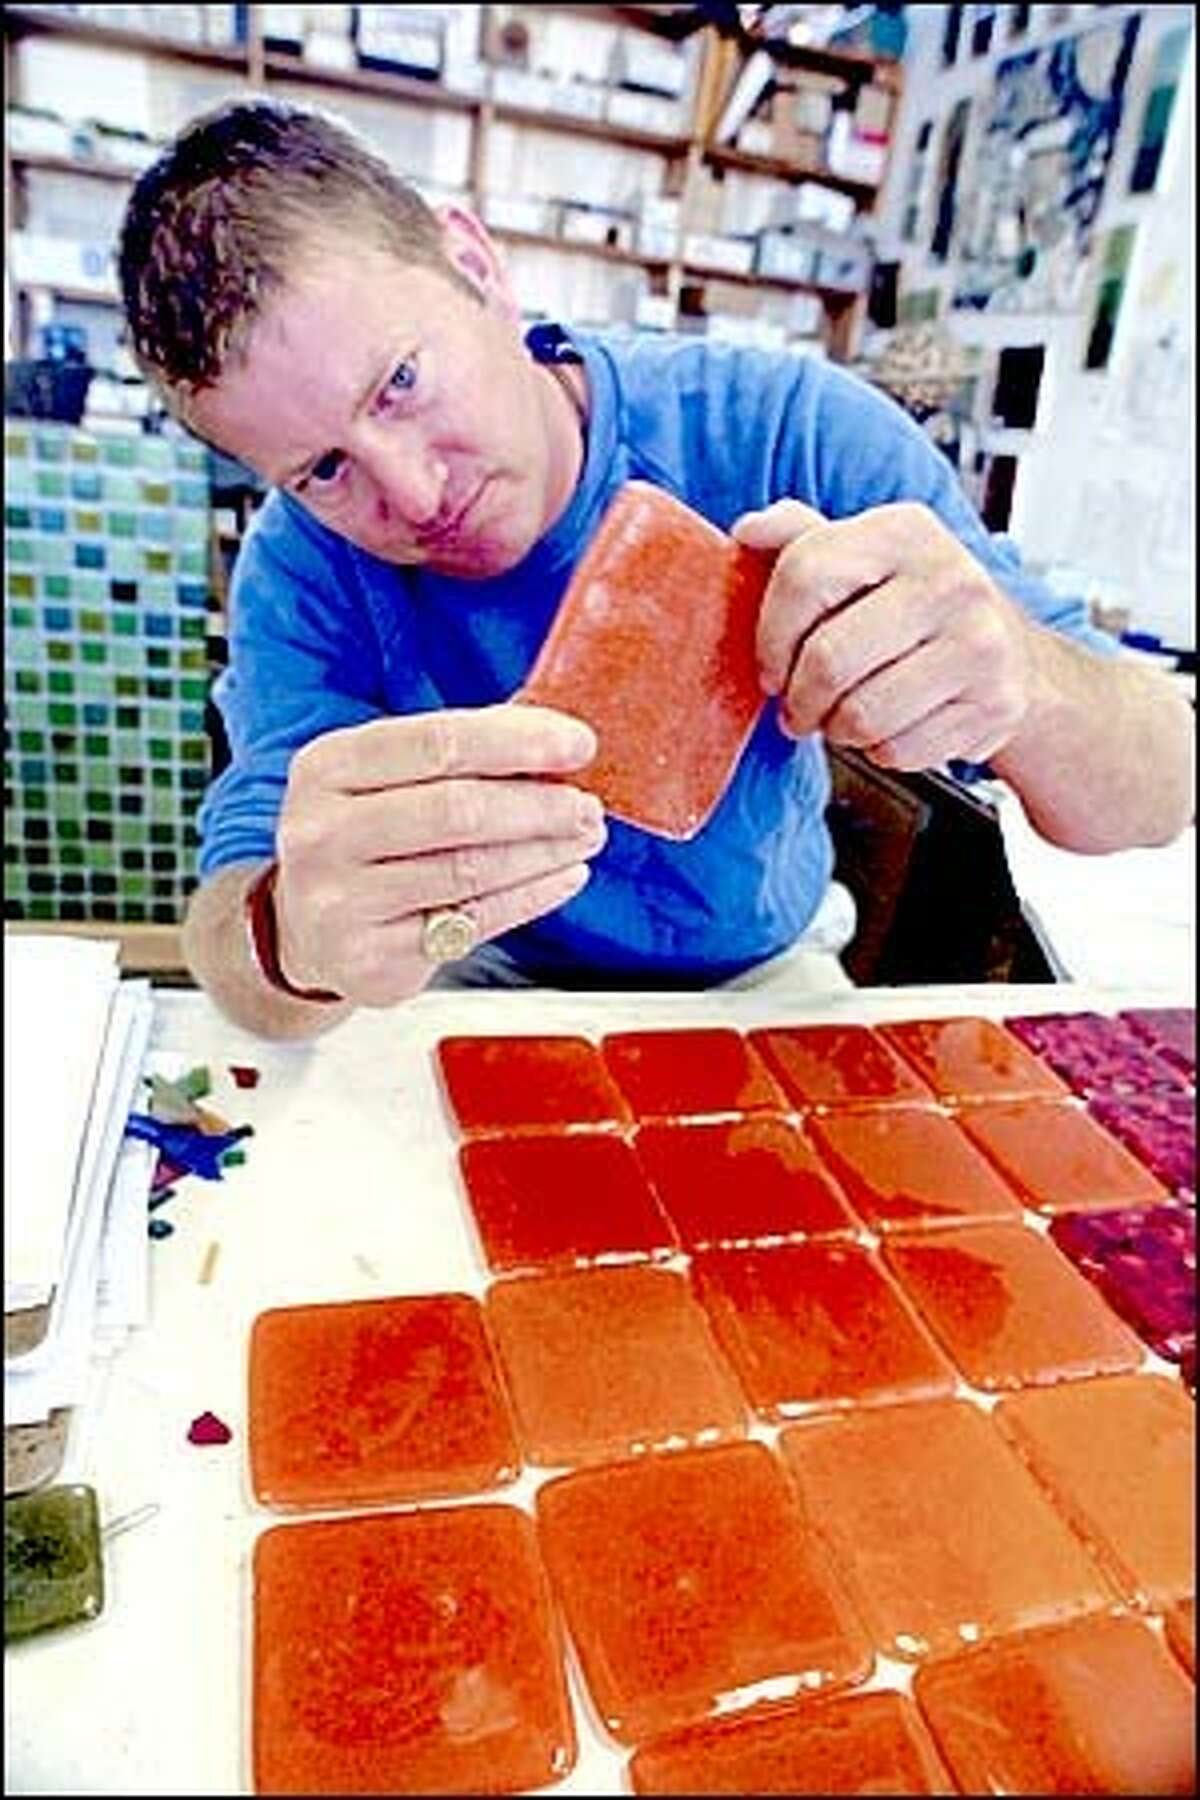 J. Penrose, manager of Bedrock Industries' architectural line, checks tiles that will be installed in a remodeled kitchen. The Seattle company, which produces tiles and gifts made of used glass, estimates that it recycles more than 200,000 pounds of glass annually. Bedrock tiles are sold around the country and in its West Garfield Street store.